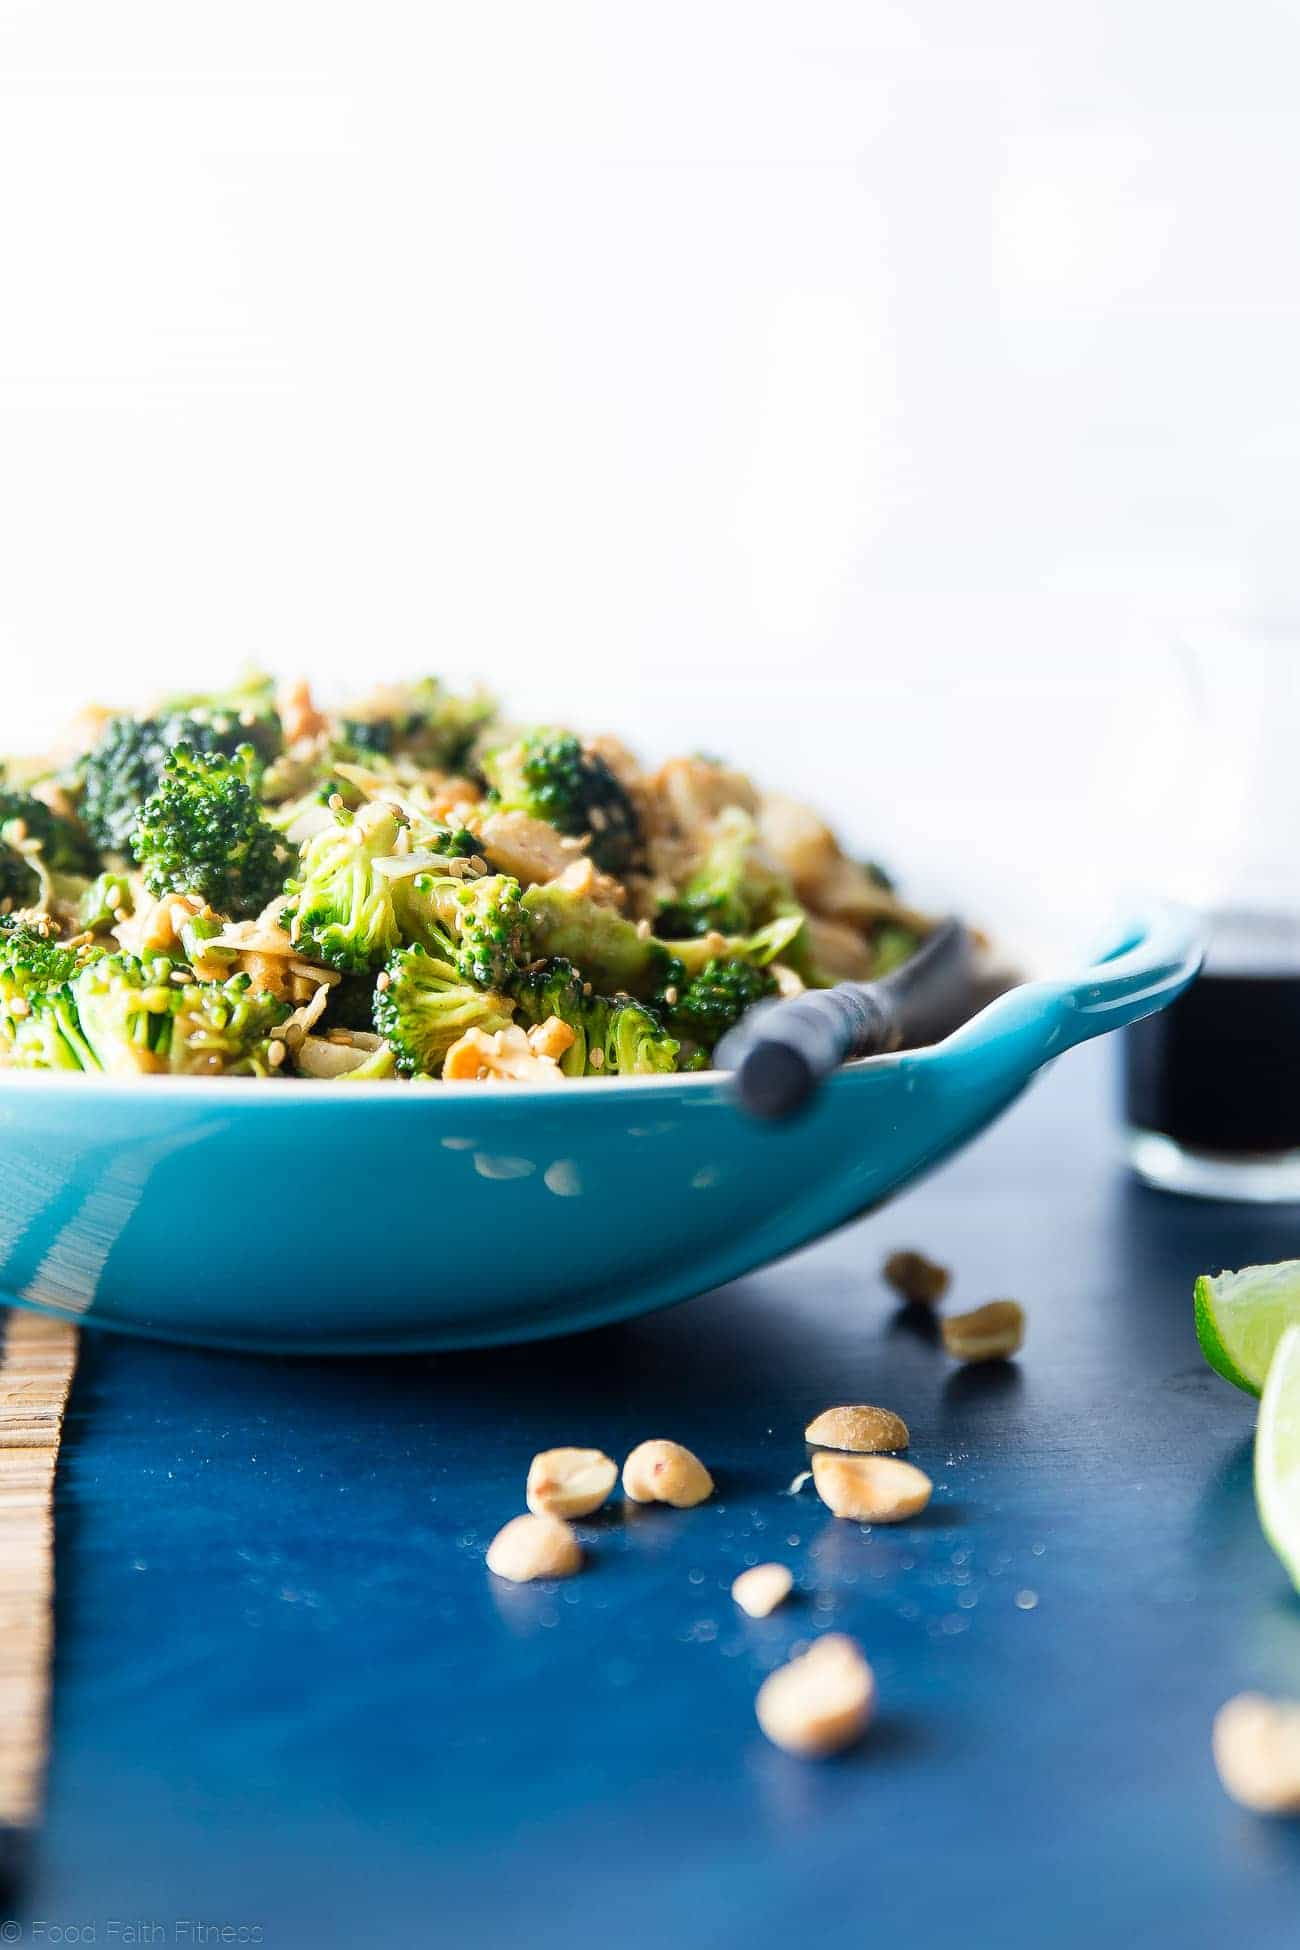 Asian Healthy Broccoli Salad - This crowd-pleasing healthy broccoli salad is a no-cook side dish, loaded with creamy peanut sauce! It's quick and easy, gluten free and vegan with a paleo option! | Foodfaithfitness.com | @FoodFaithFit